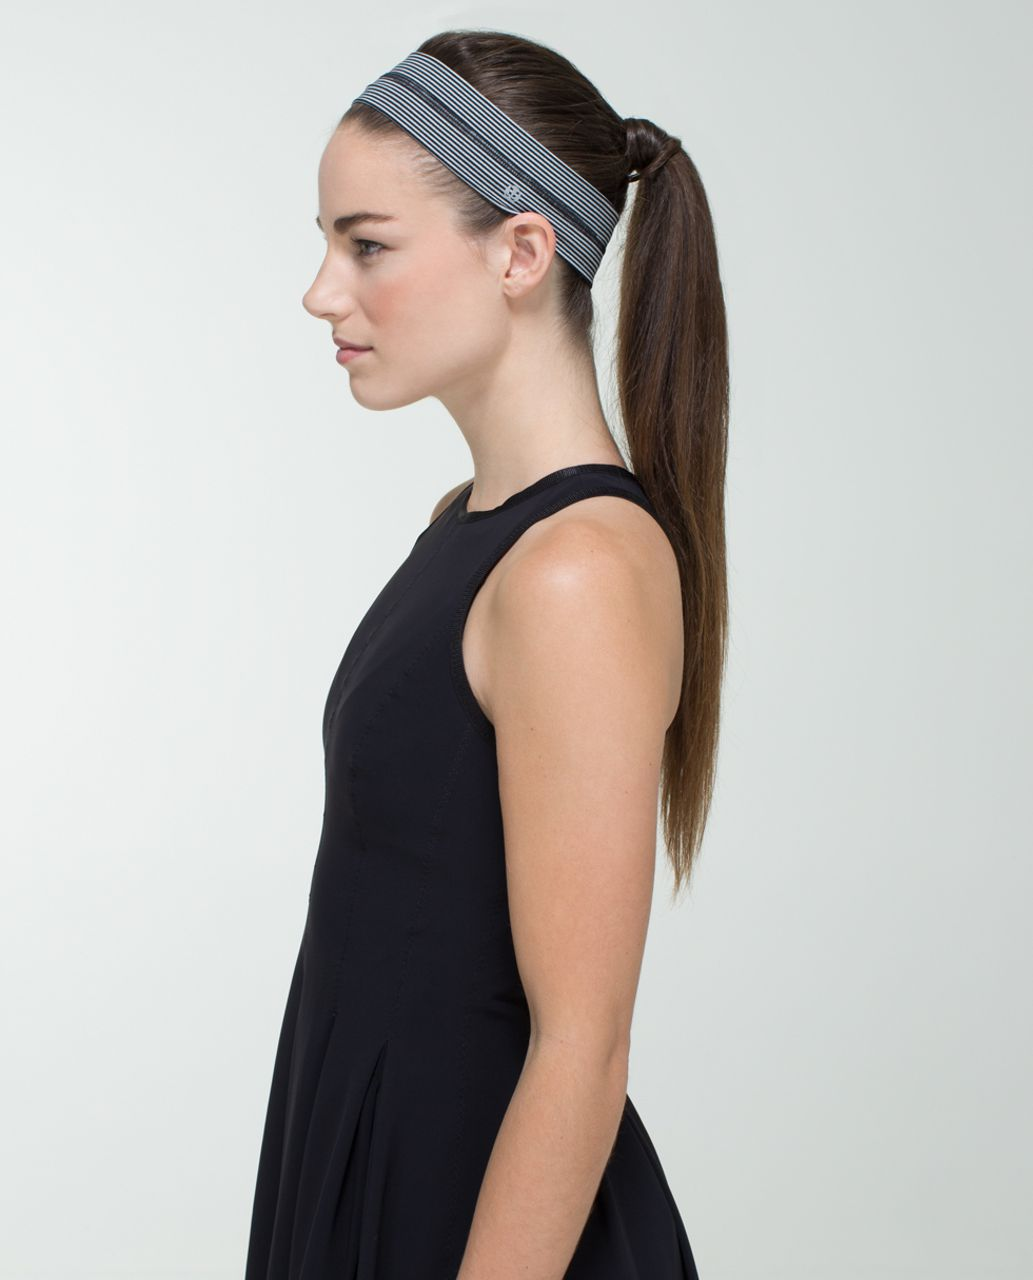 Lululemon Fly Away Tamer Headband - Tonka Stripe Black Heathered Medium Grey